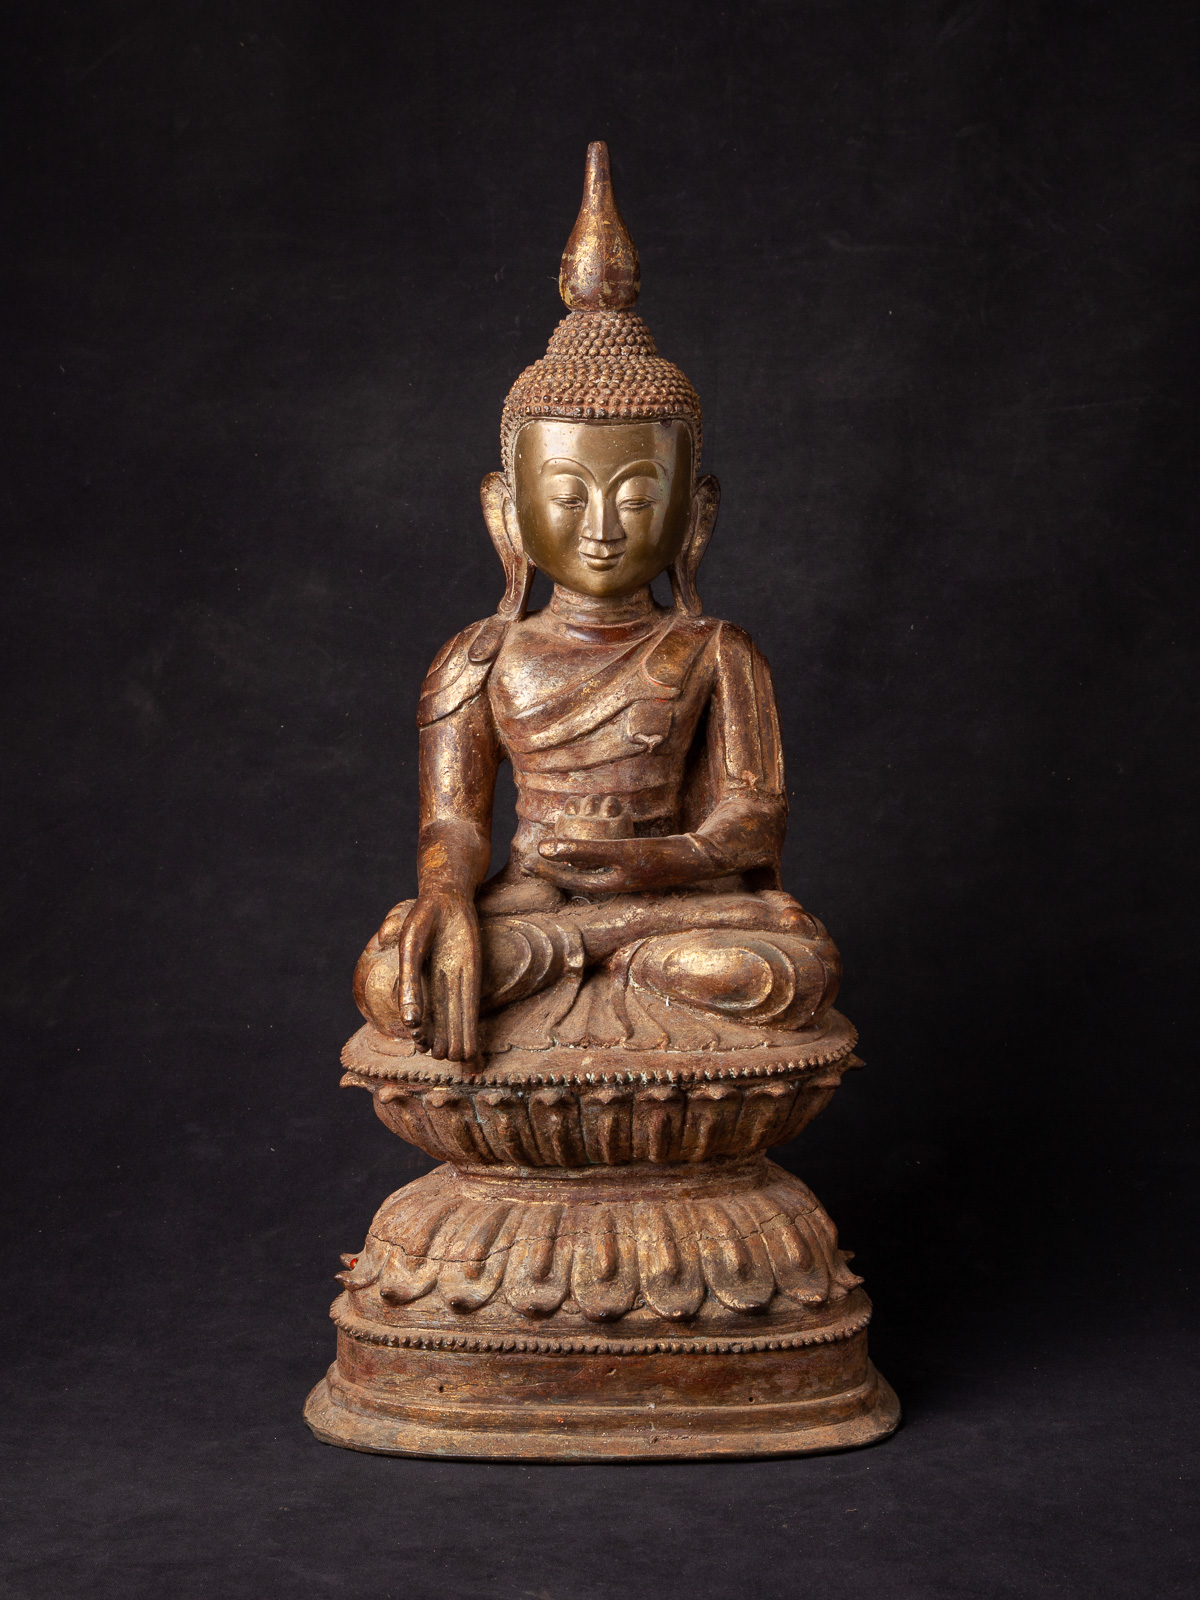 Special antique bronze Buddha statue from Burma made from Bronze